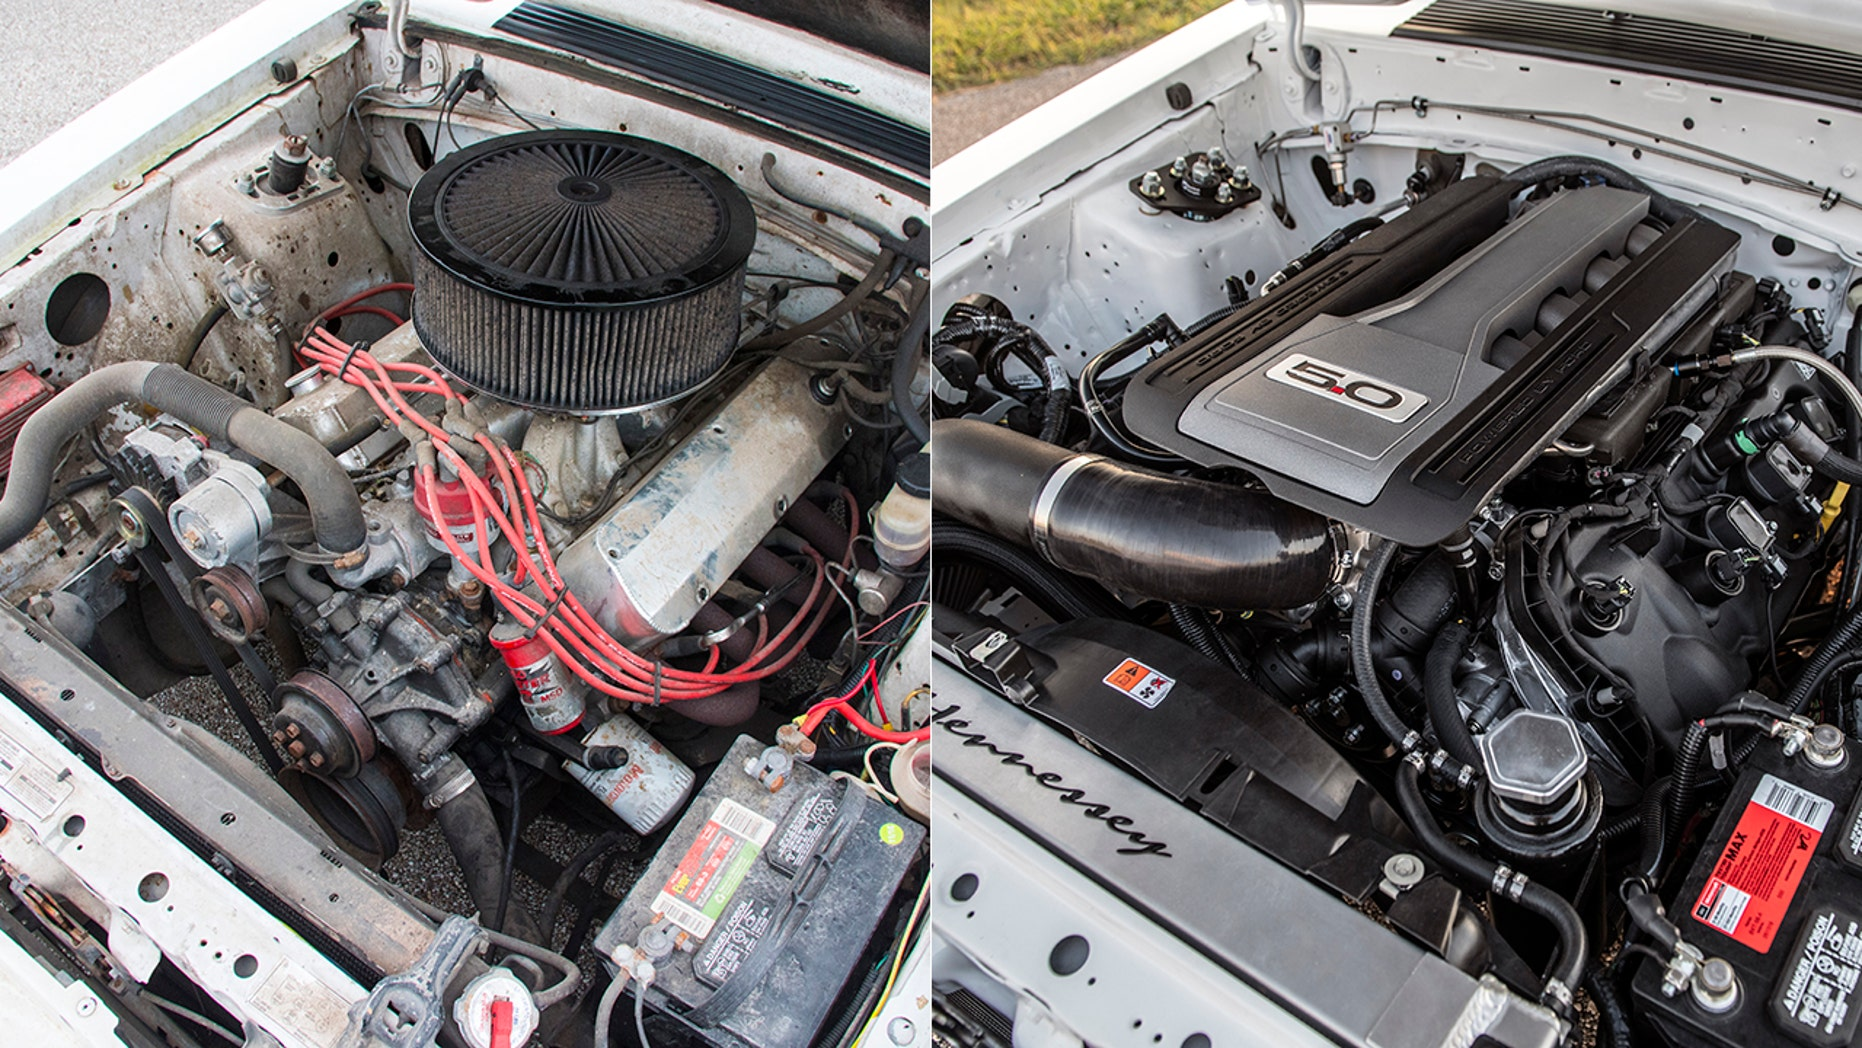 1993 Ford Mustang GT engine